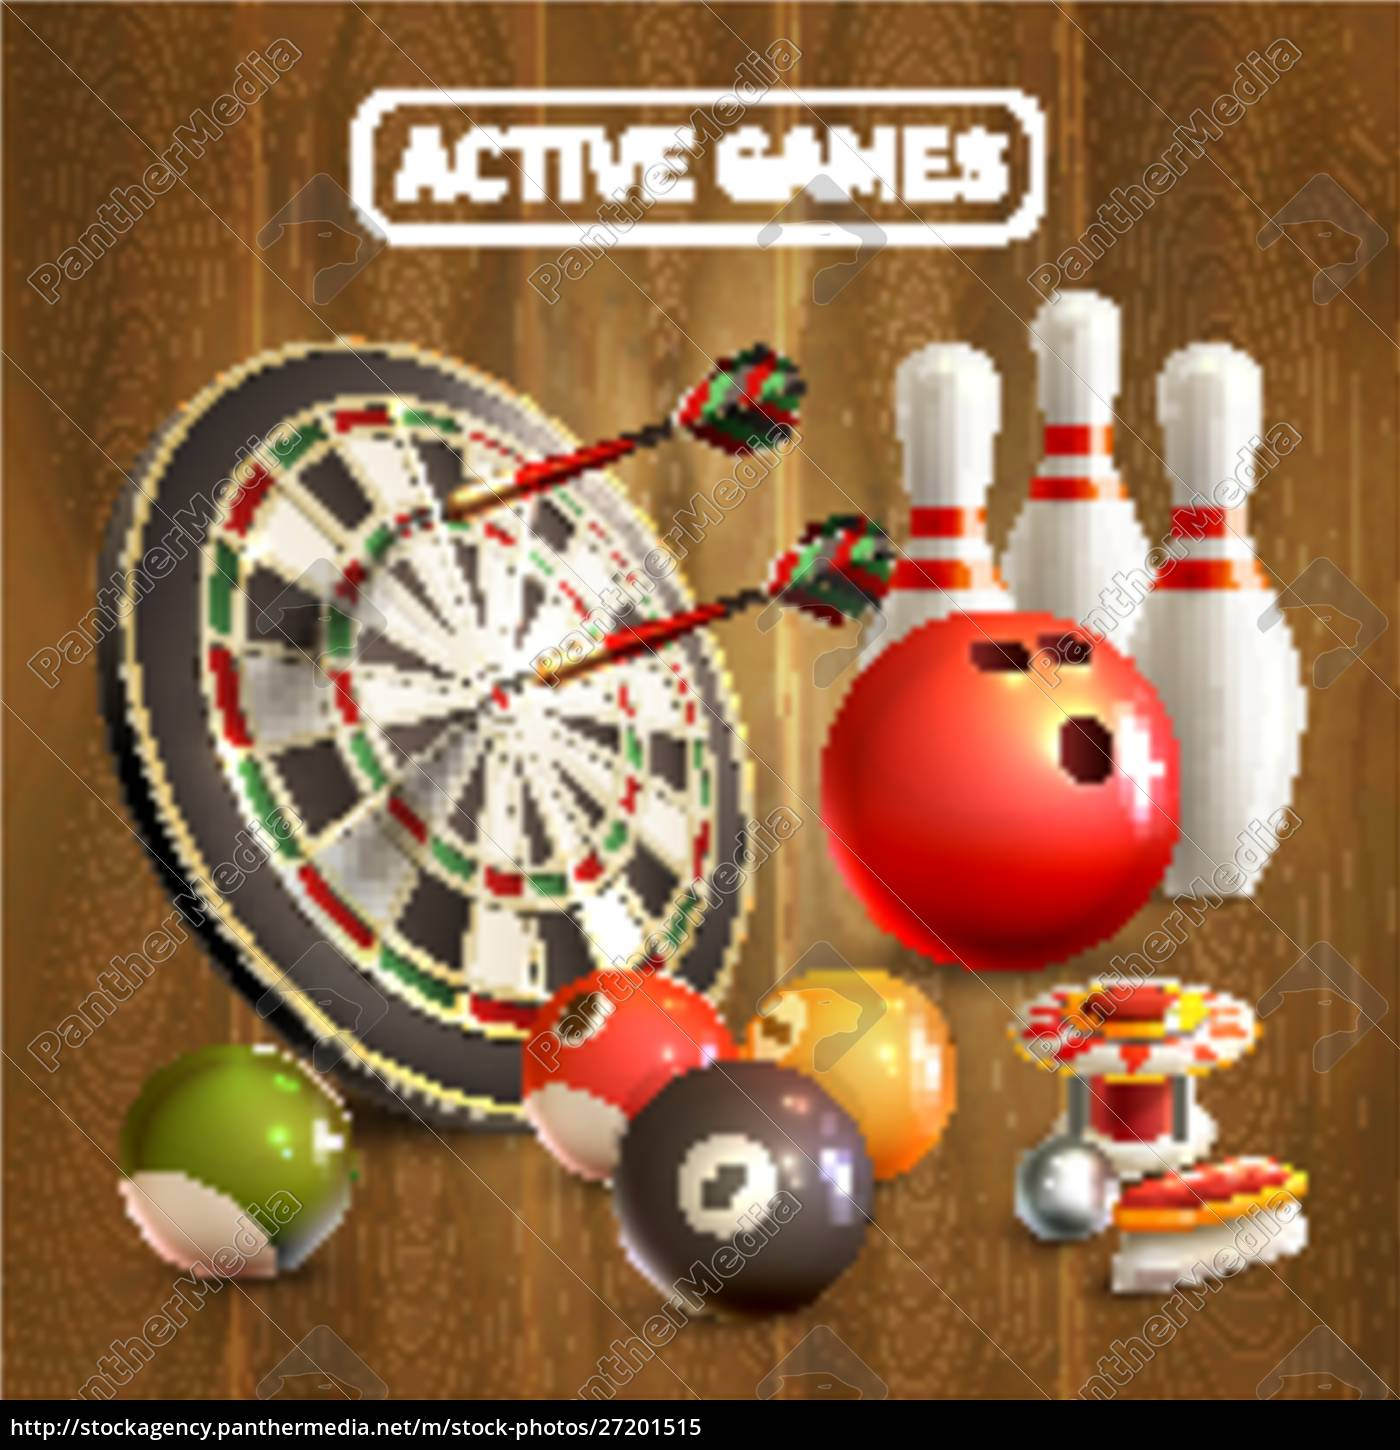 games, realistic, concept, with, active, games - 27201515